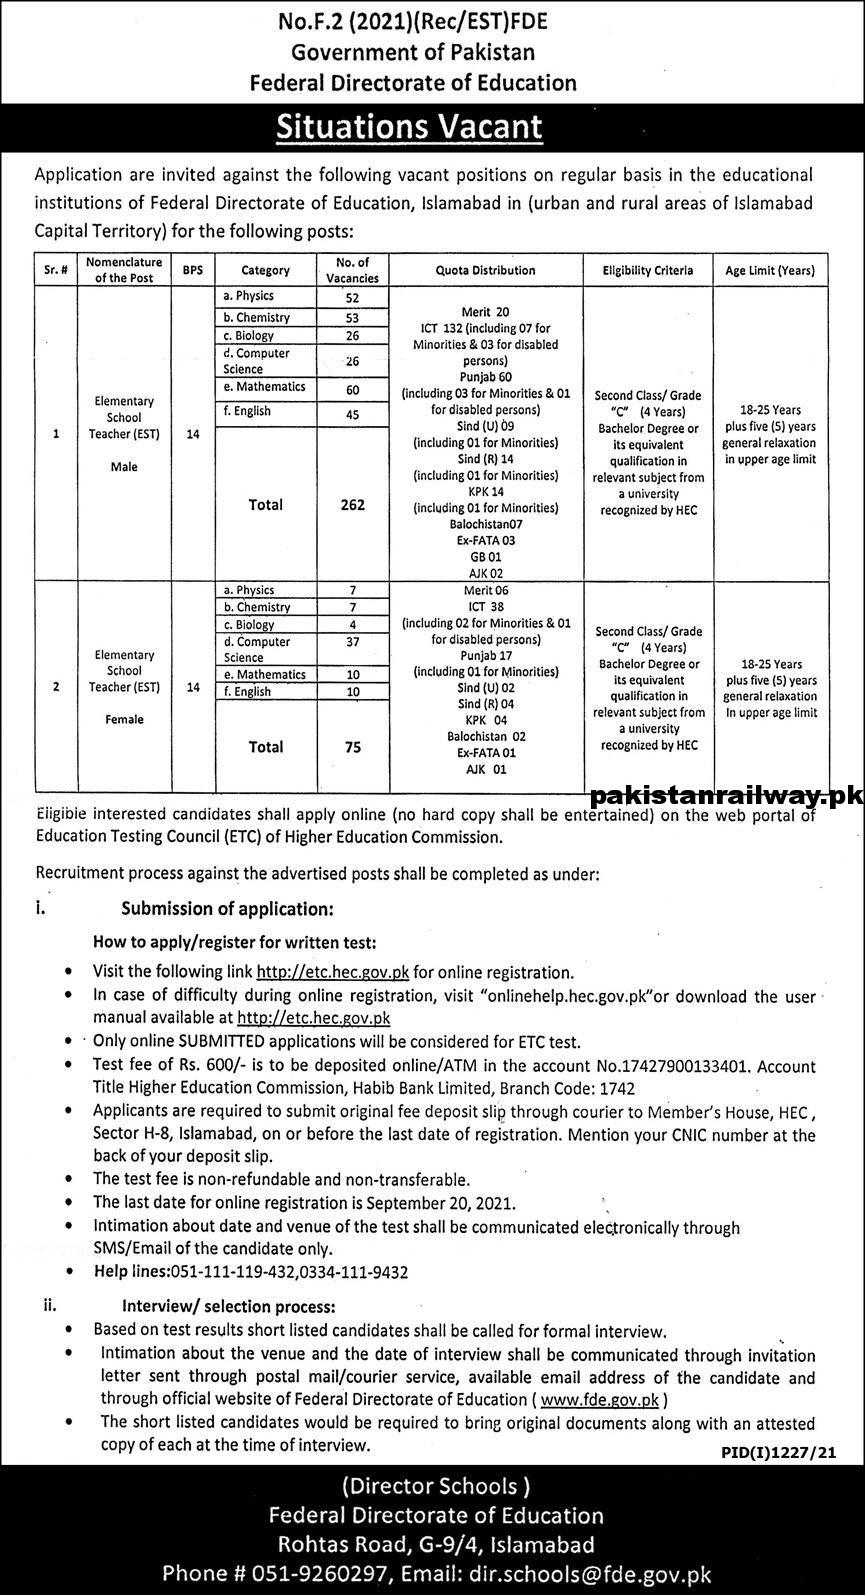 Govt Teaching Jobs in Pakistan 2021 At Federal Directorate of Education